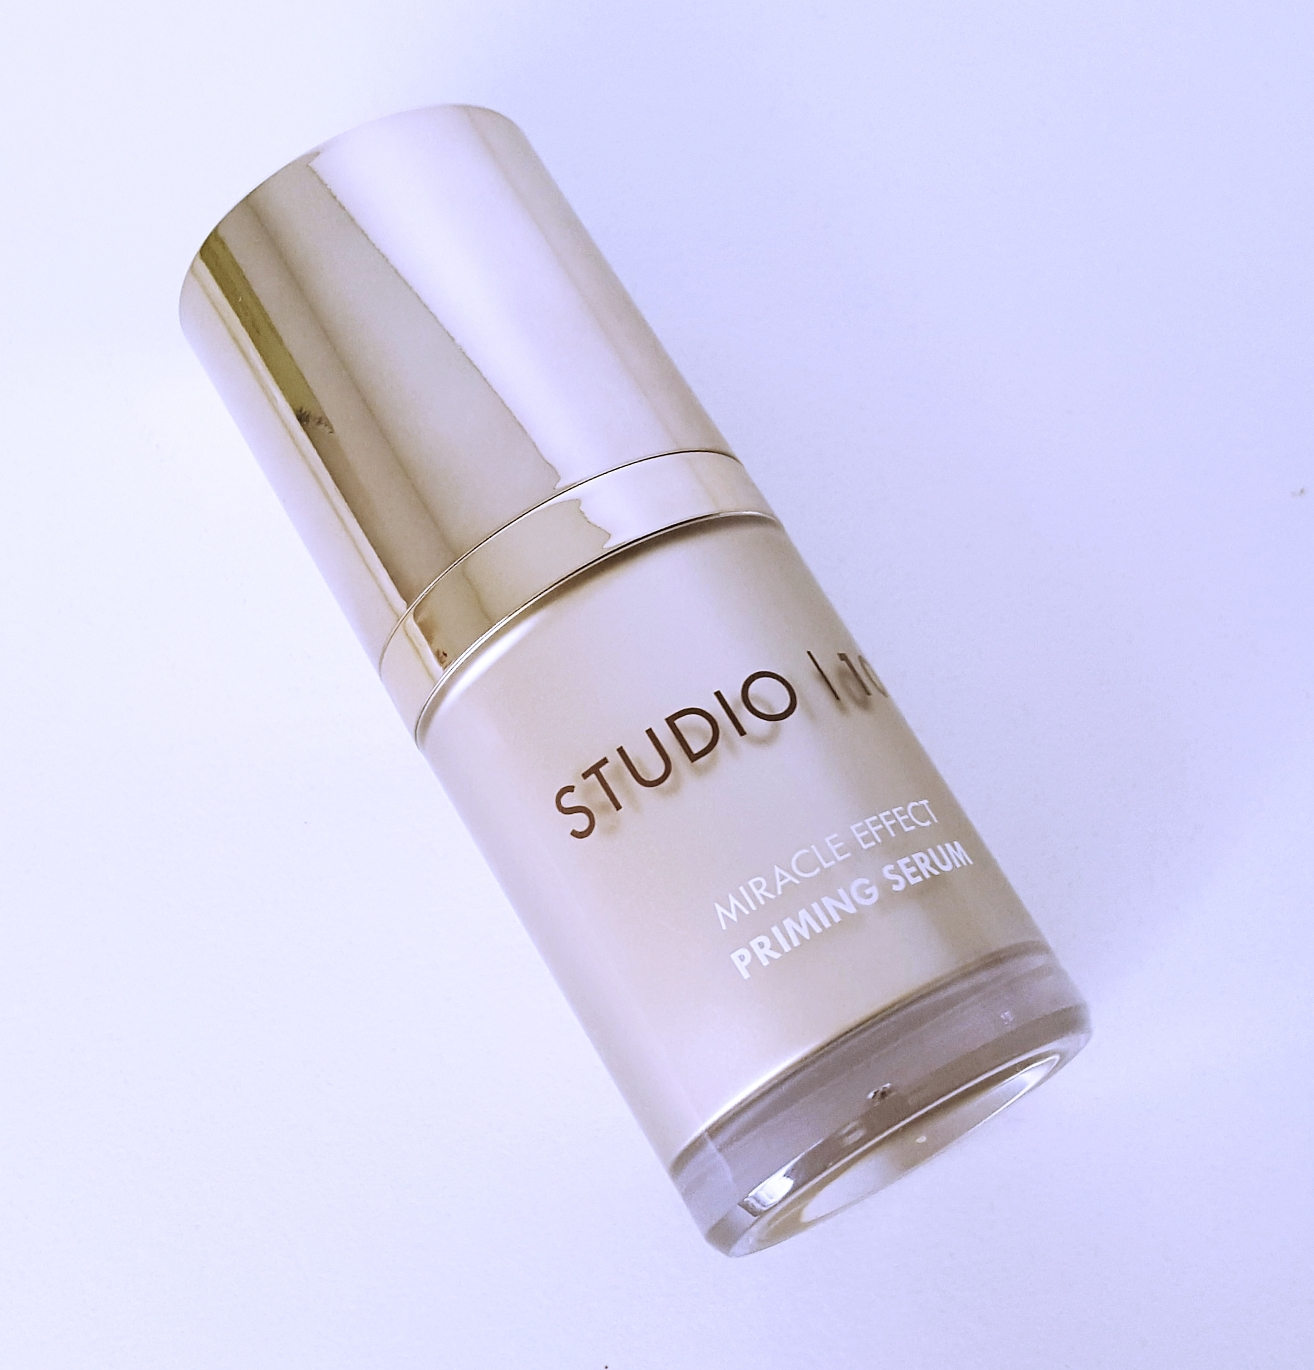 Studio 10 Primer product of the month